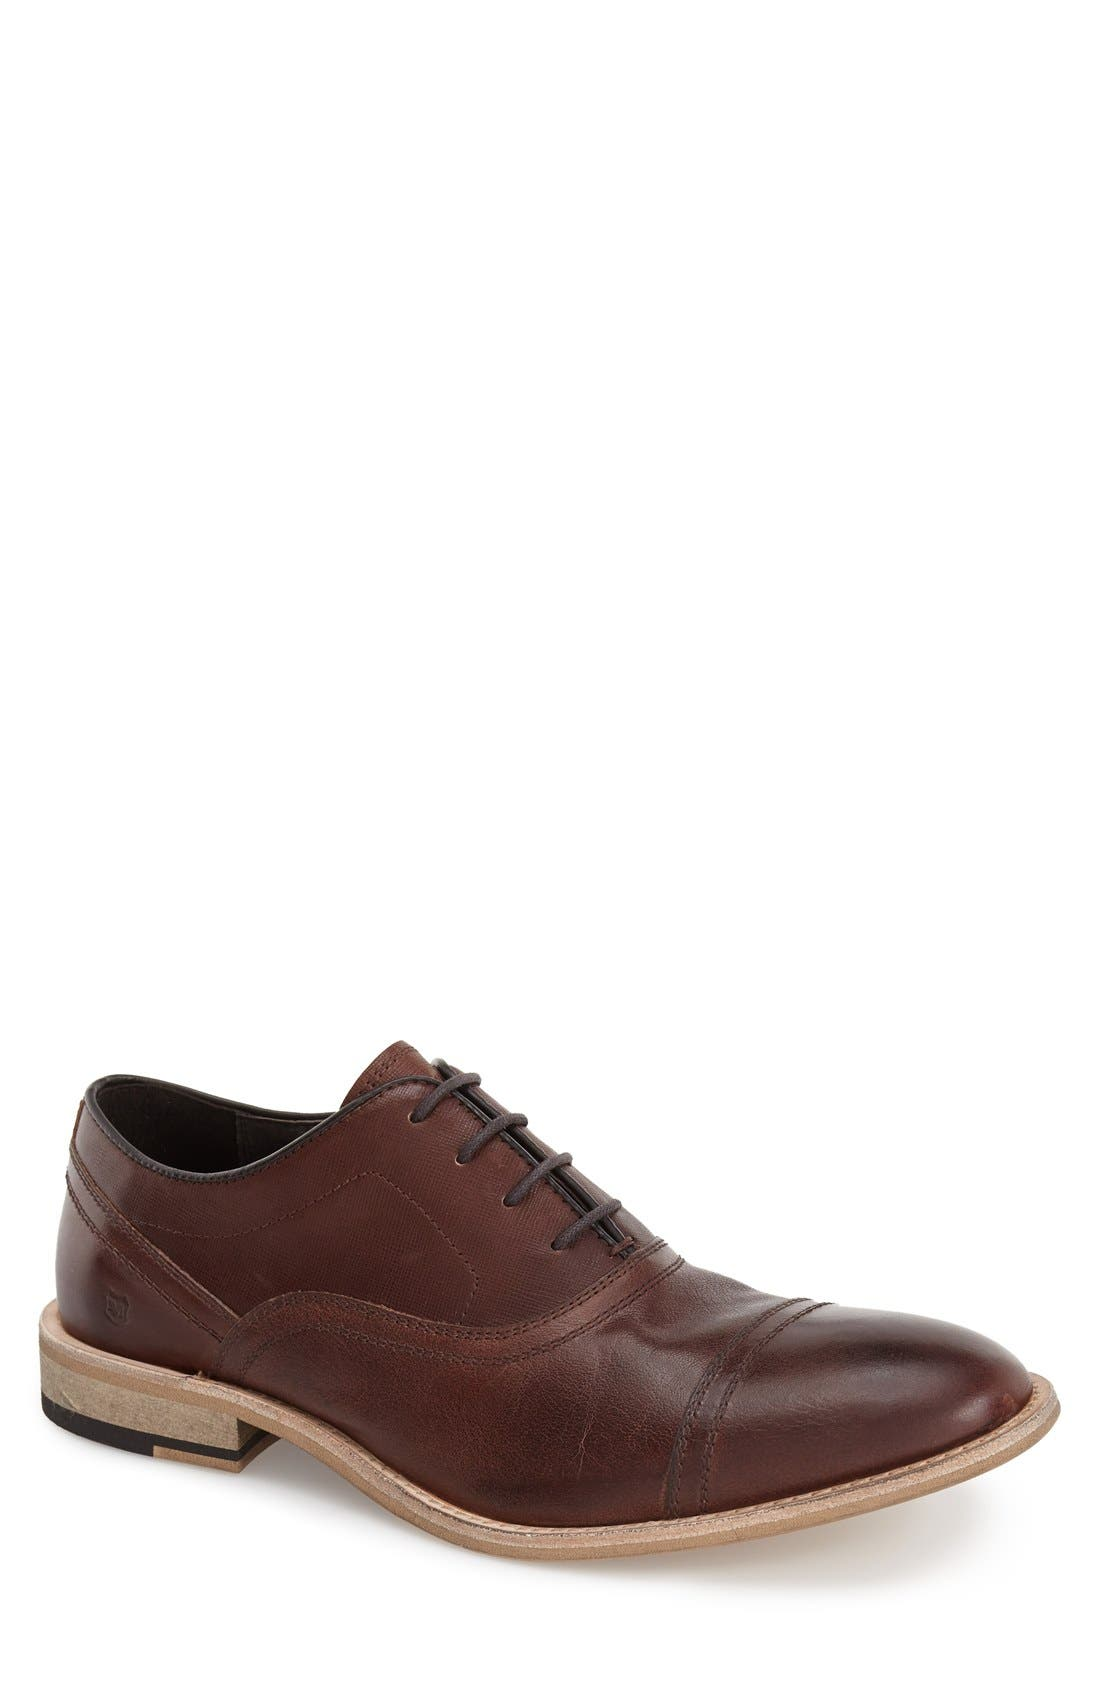 Alternate Image 1 Selected - Andrew Marc 'Henry' Cap Toe Oxford (Men)